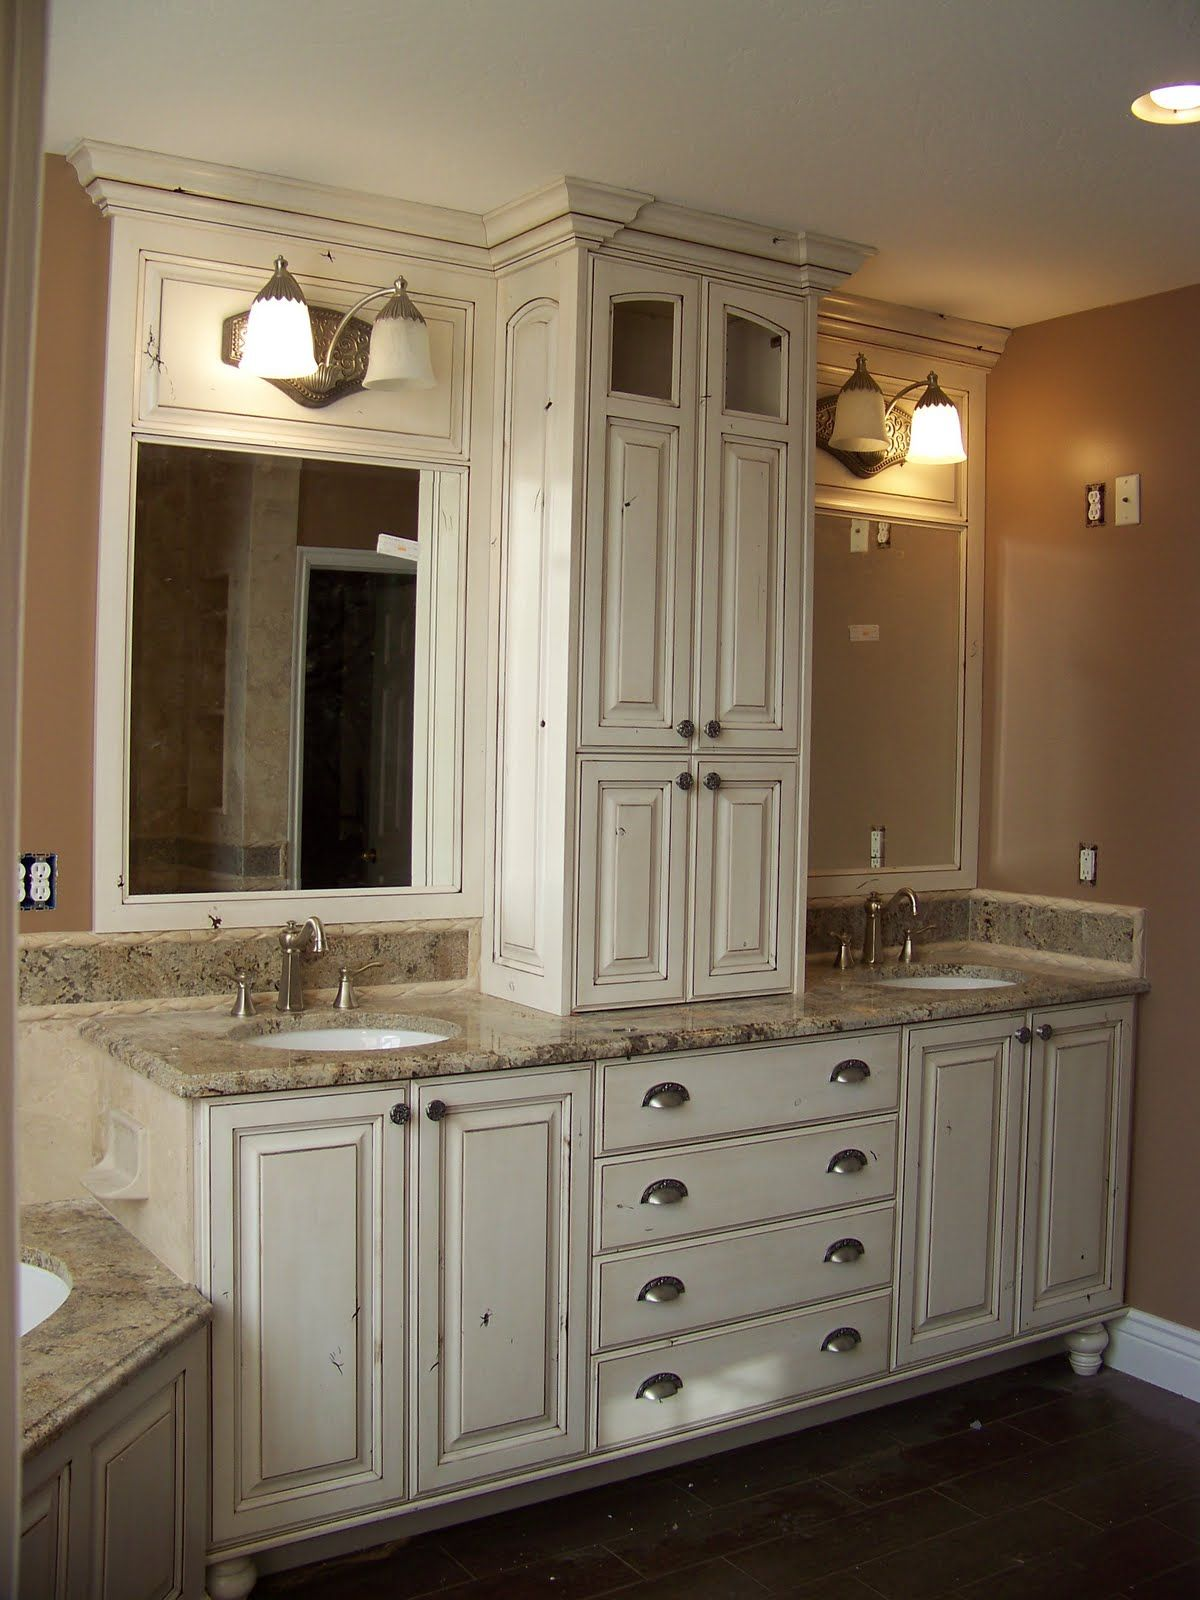 Best Smaller Area For Double Sinks But I Like The Storage 400 x 300